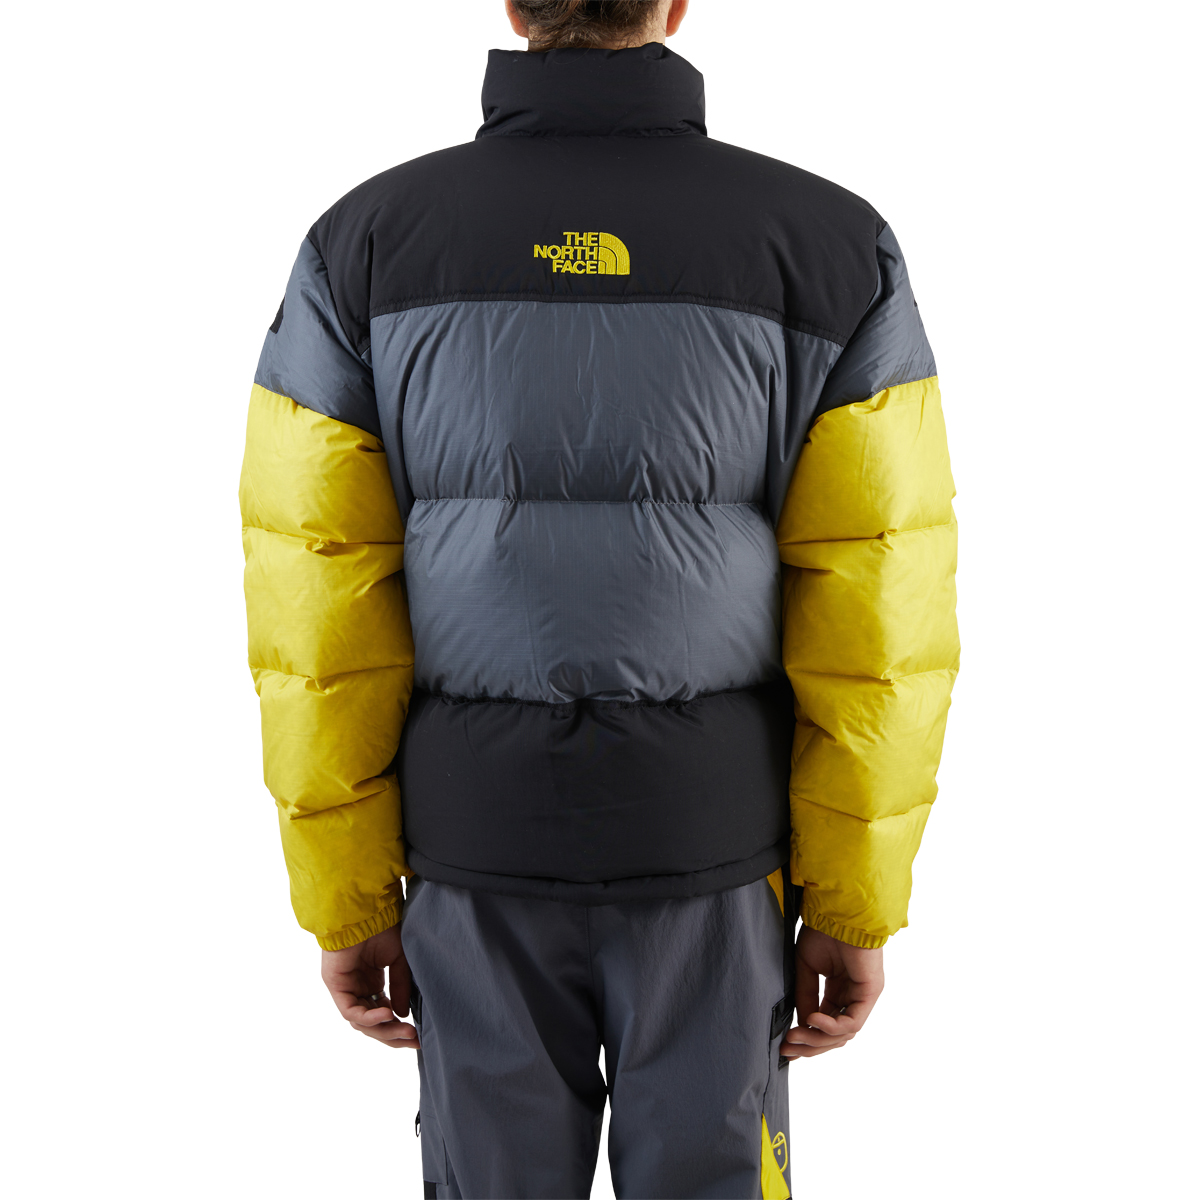 The North Face STP Tech Down Jacket